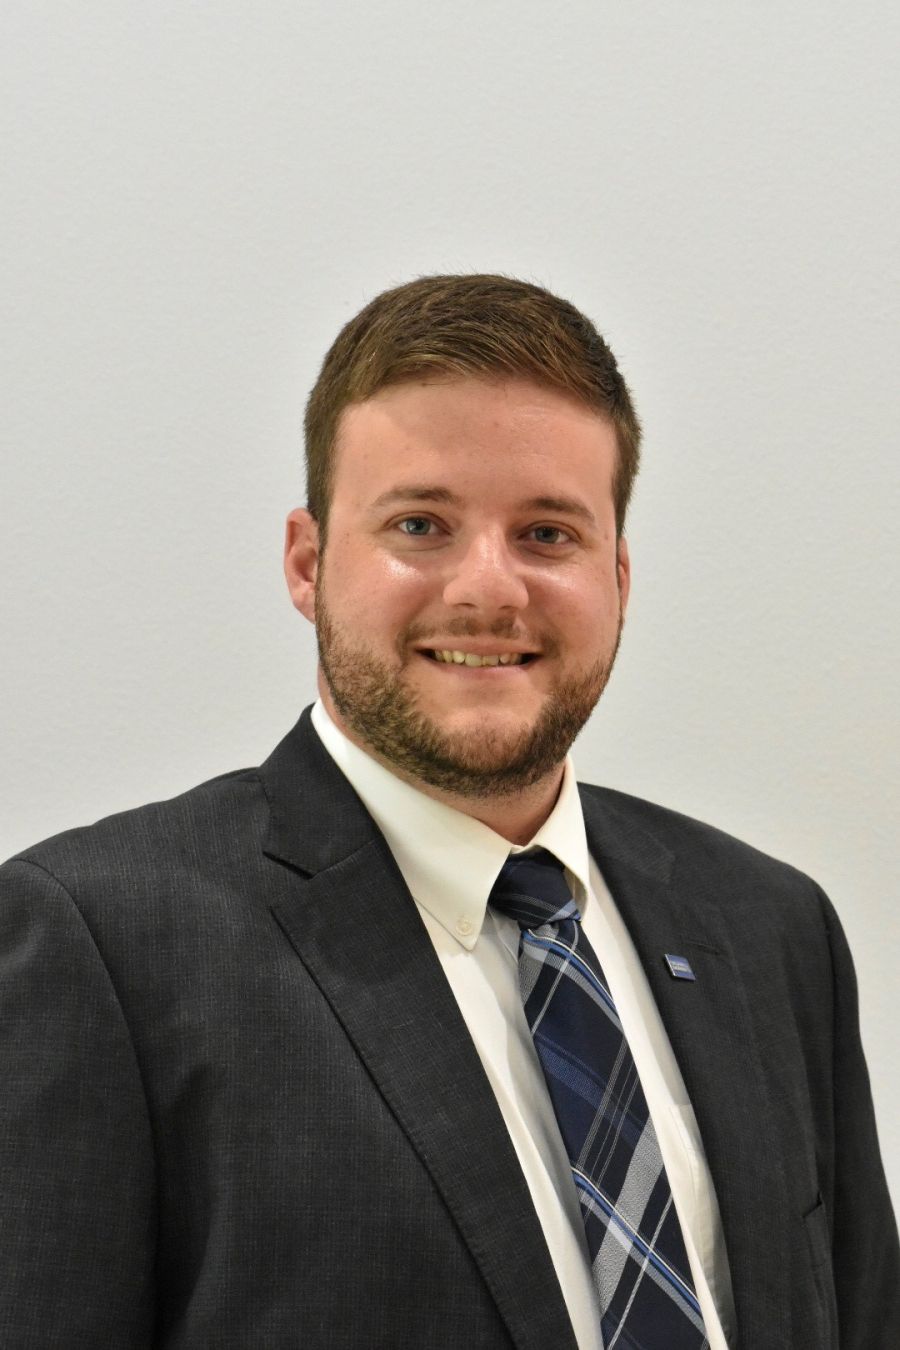 Tyler Pearsall Named Branch Manager of Coldwell Banker Realty's Jupiter Beach and Stuart Offices